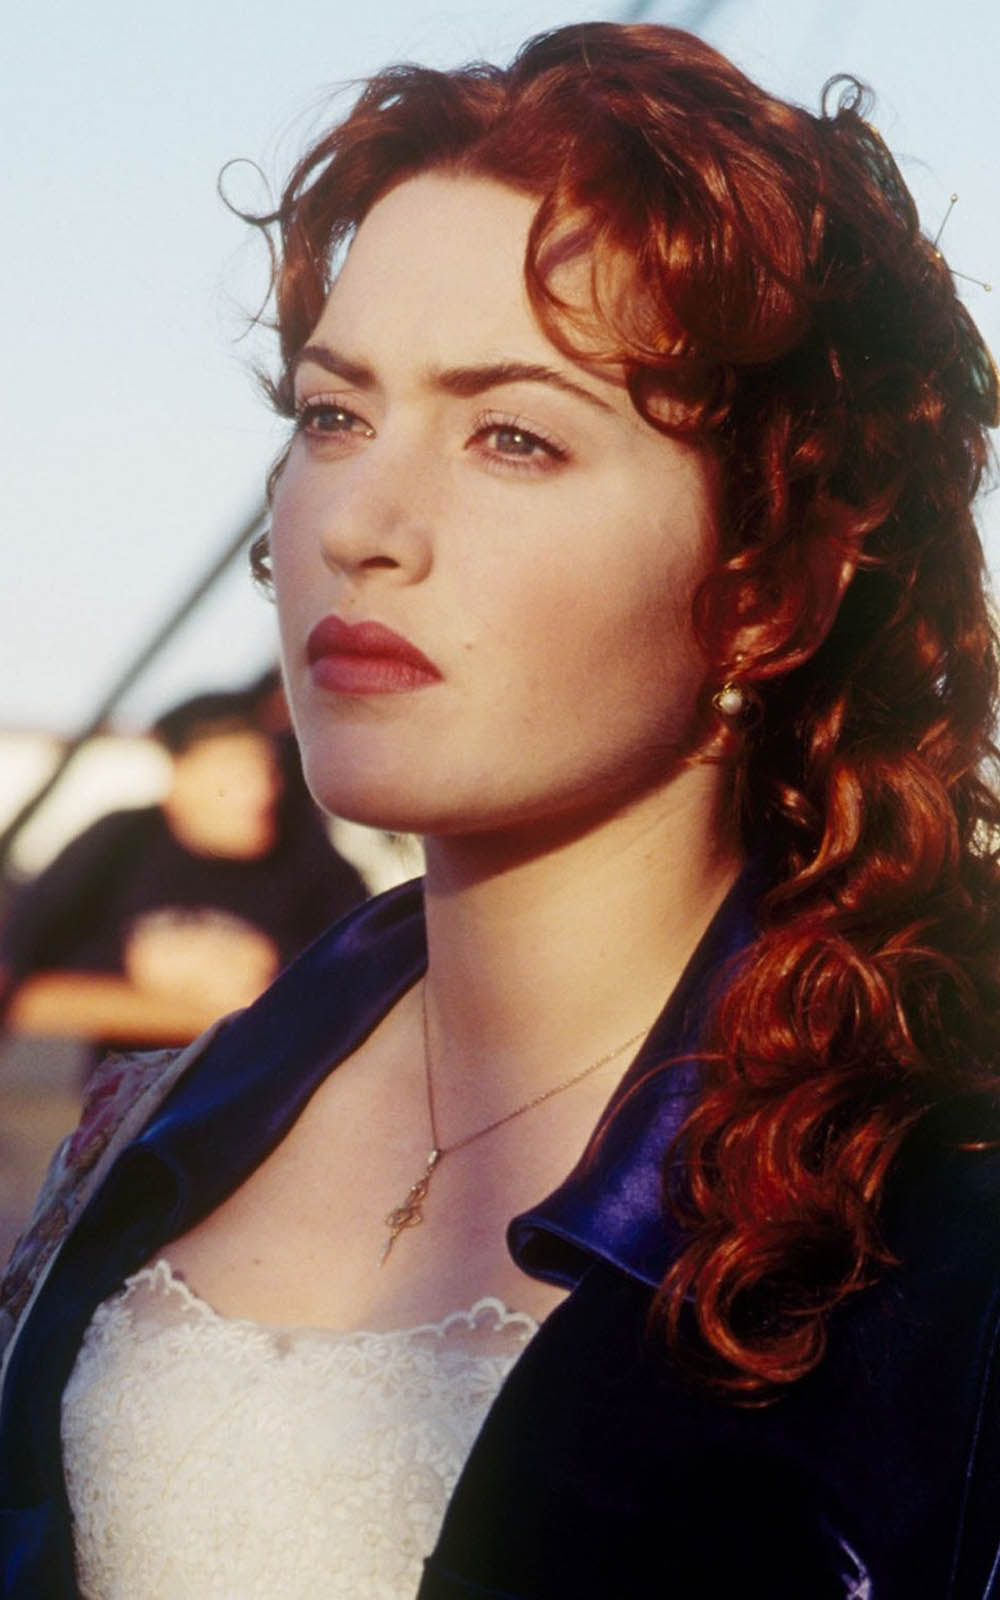 gorgeous kate winslet in titanic hd mobile wallpaper - download free